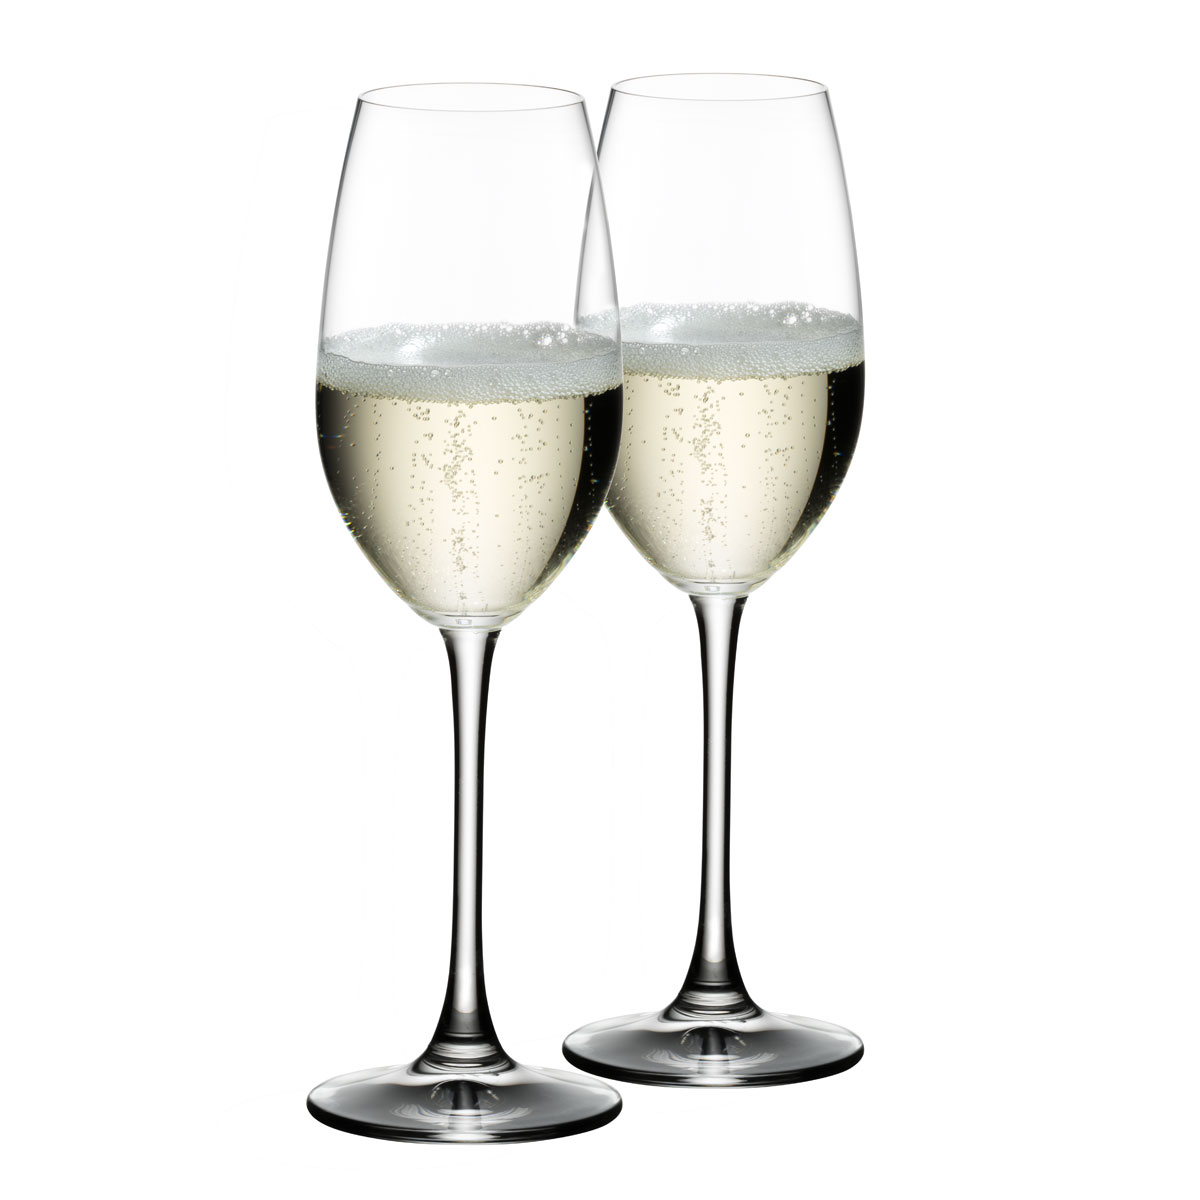 Riedel Ouverture, Champagne Crystal Glasses, Pair